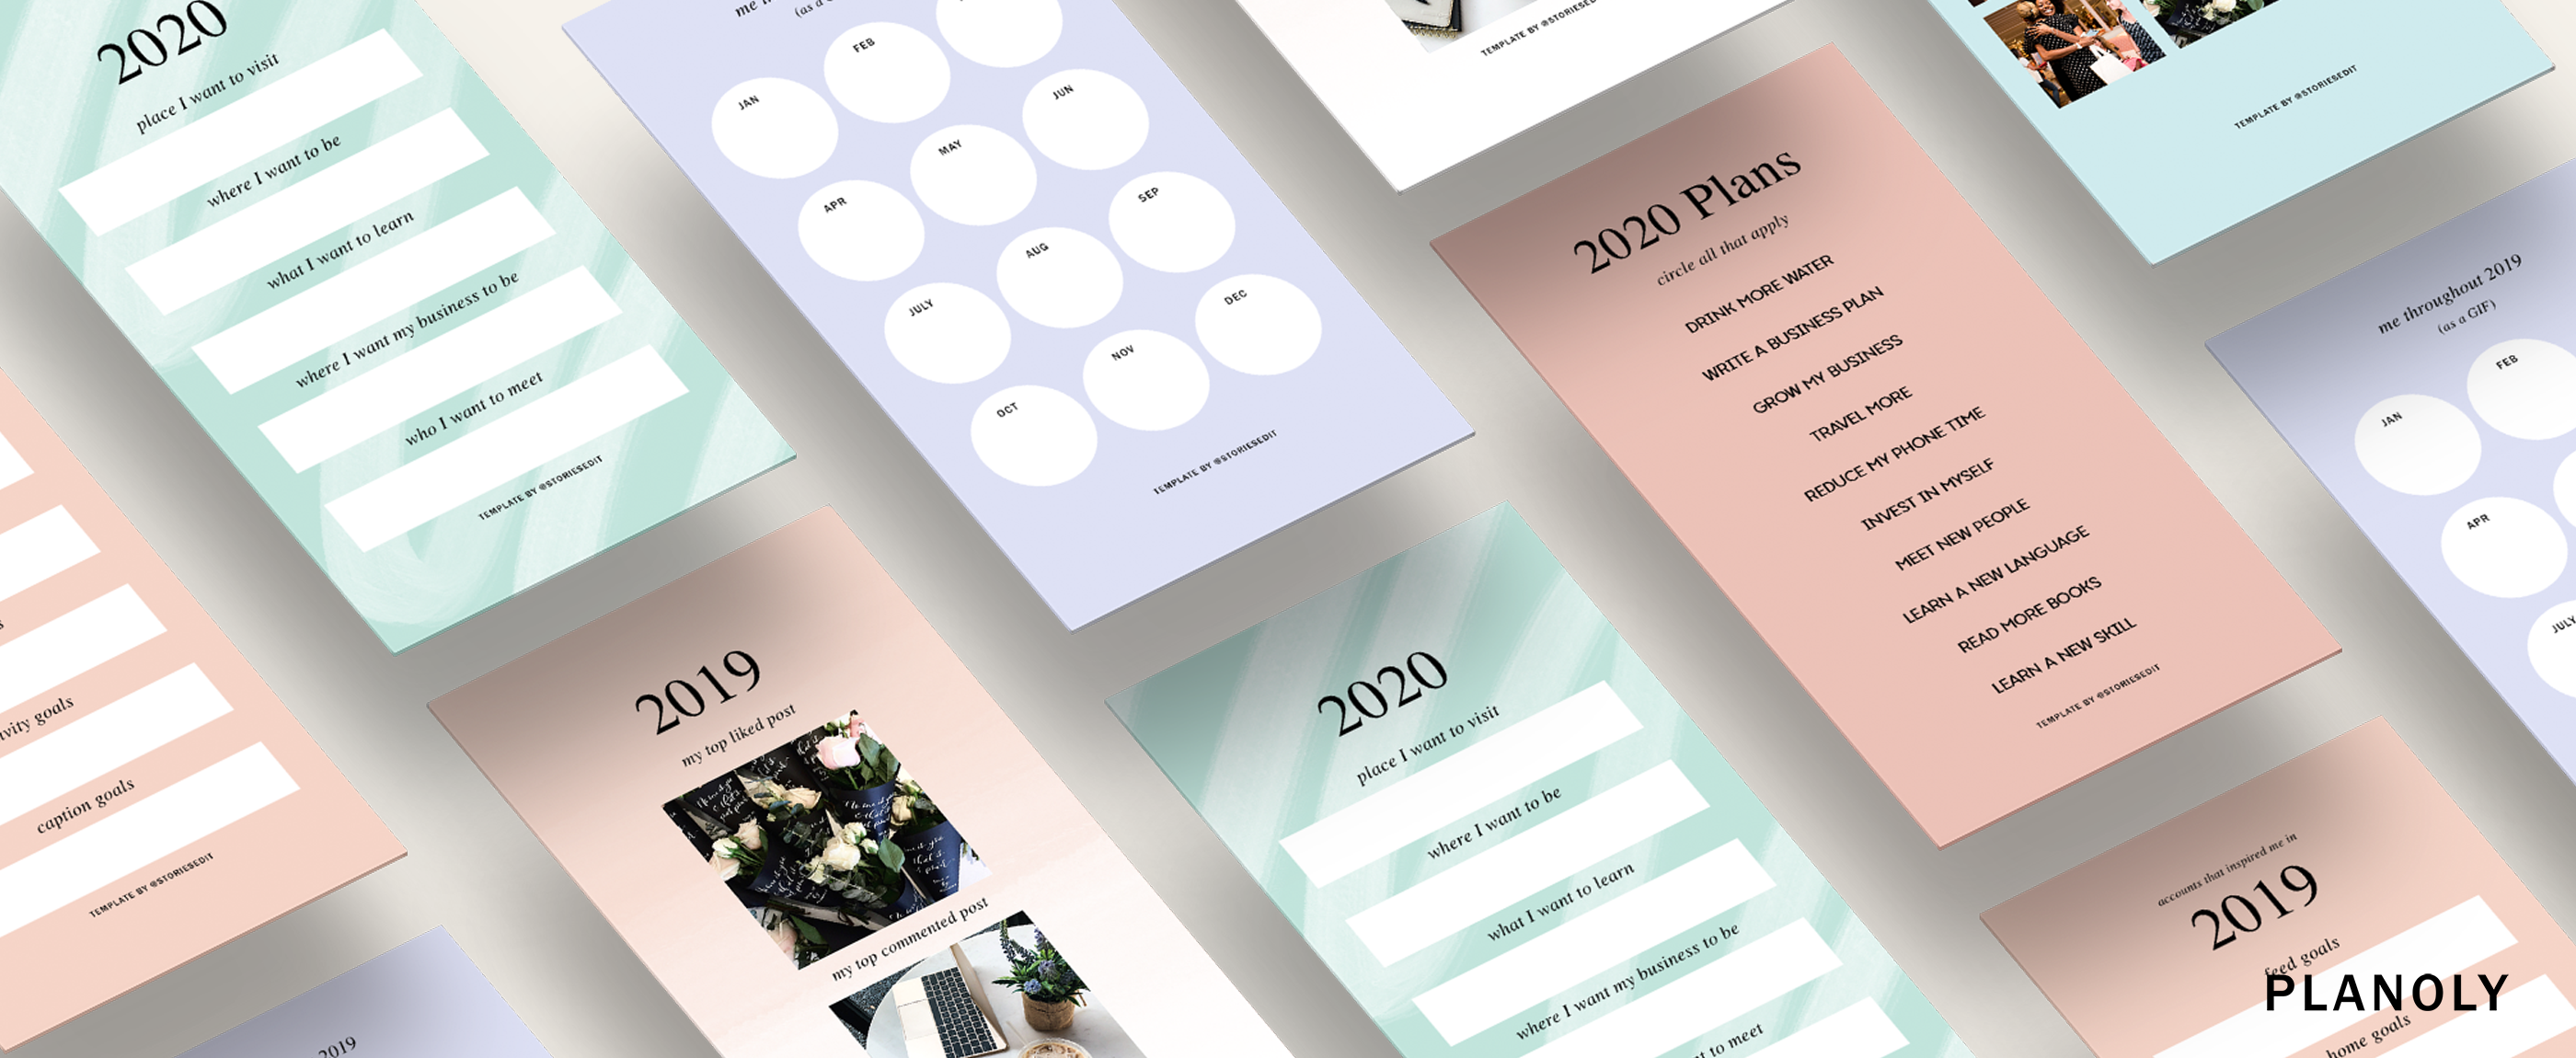 Planoly-Blog-Post-Stories-Edit-2019-2020-Collection-Banner-11